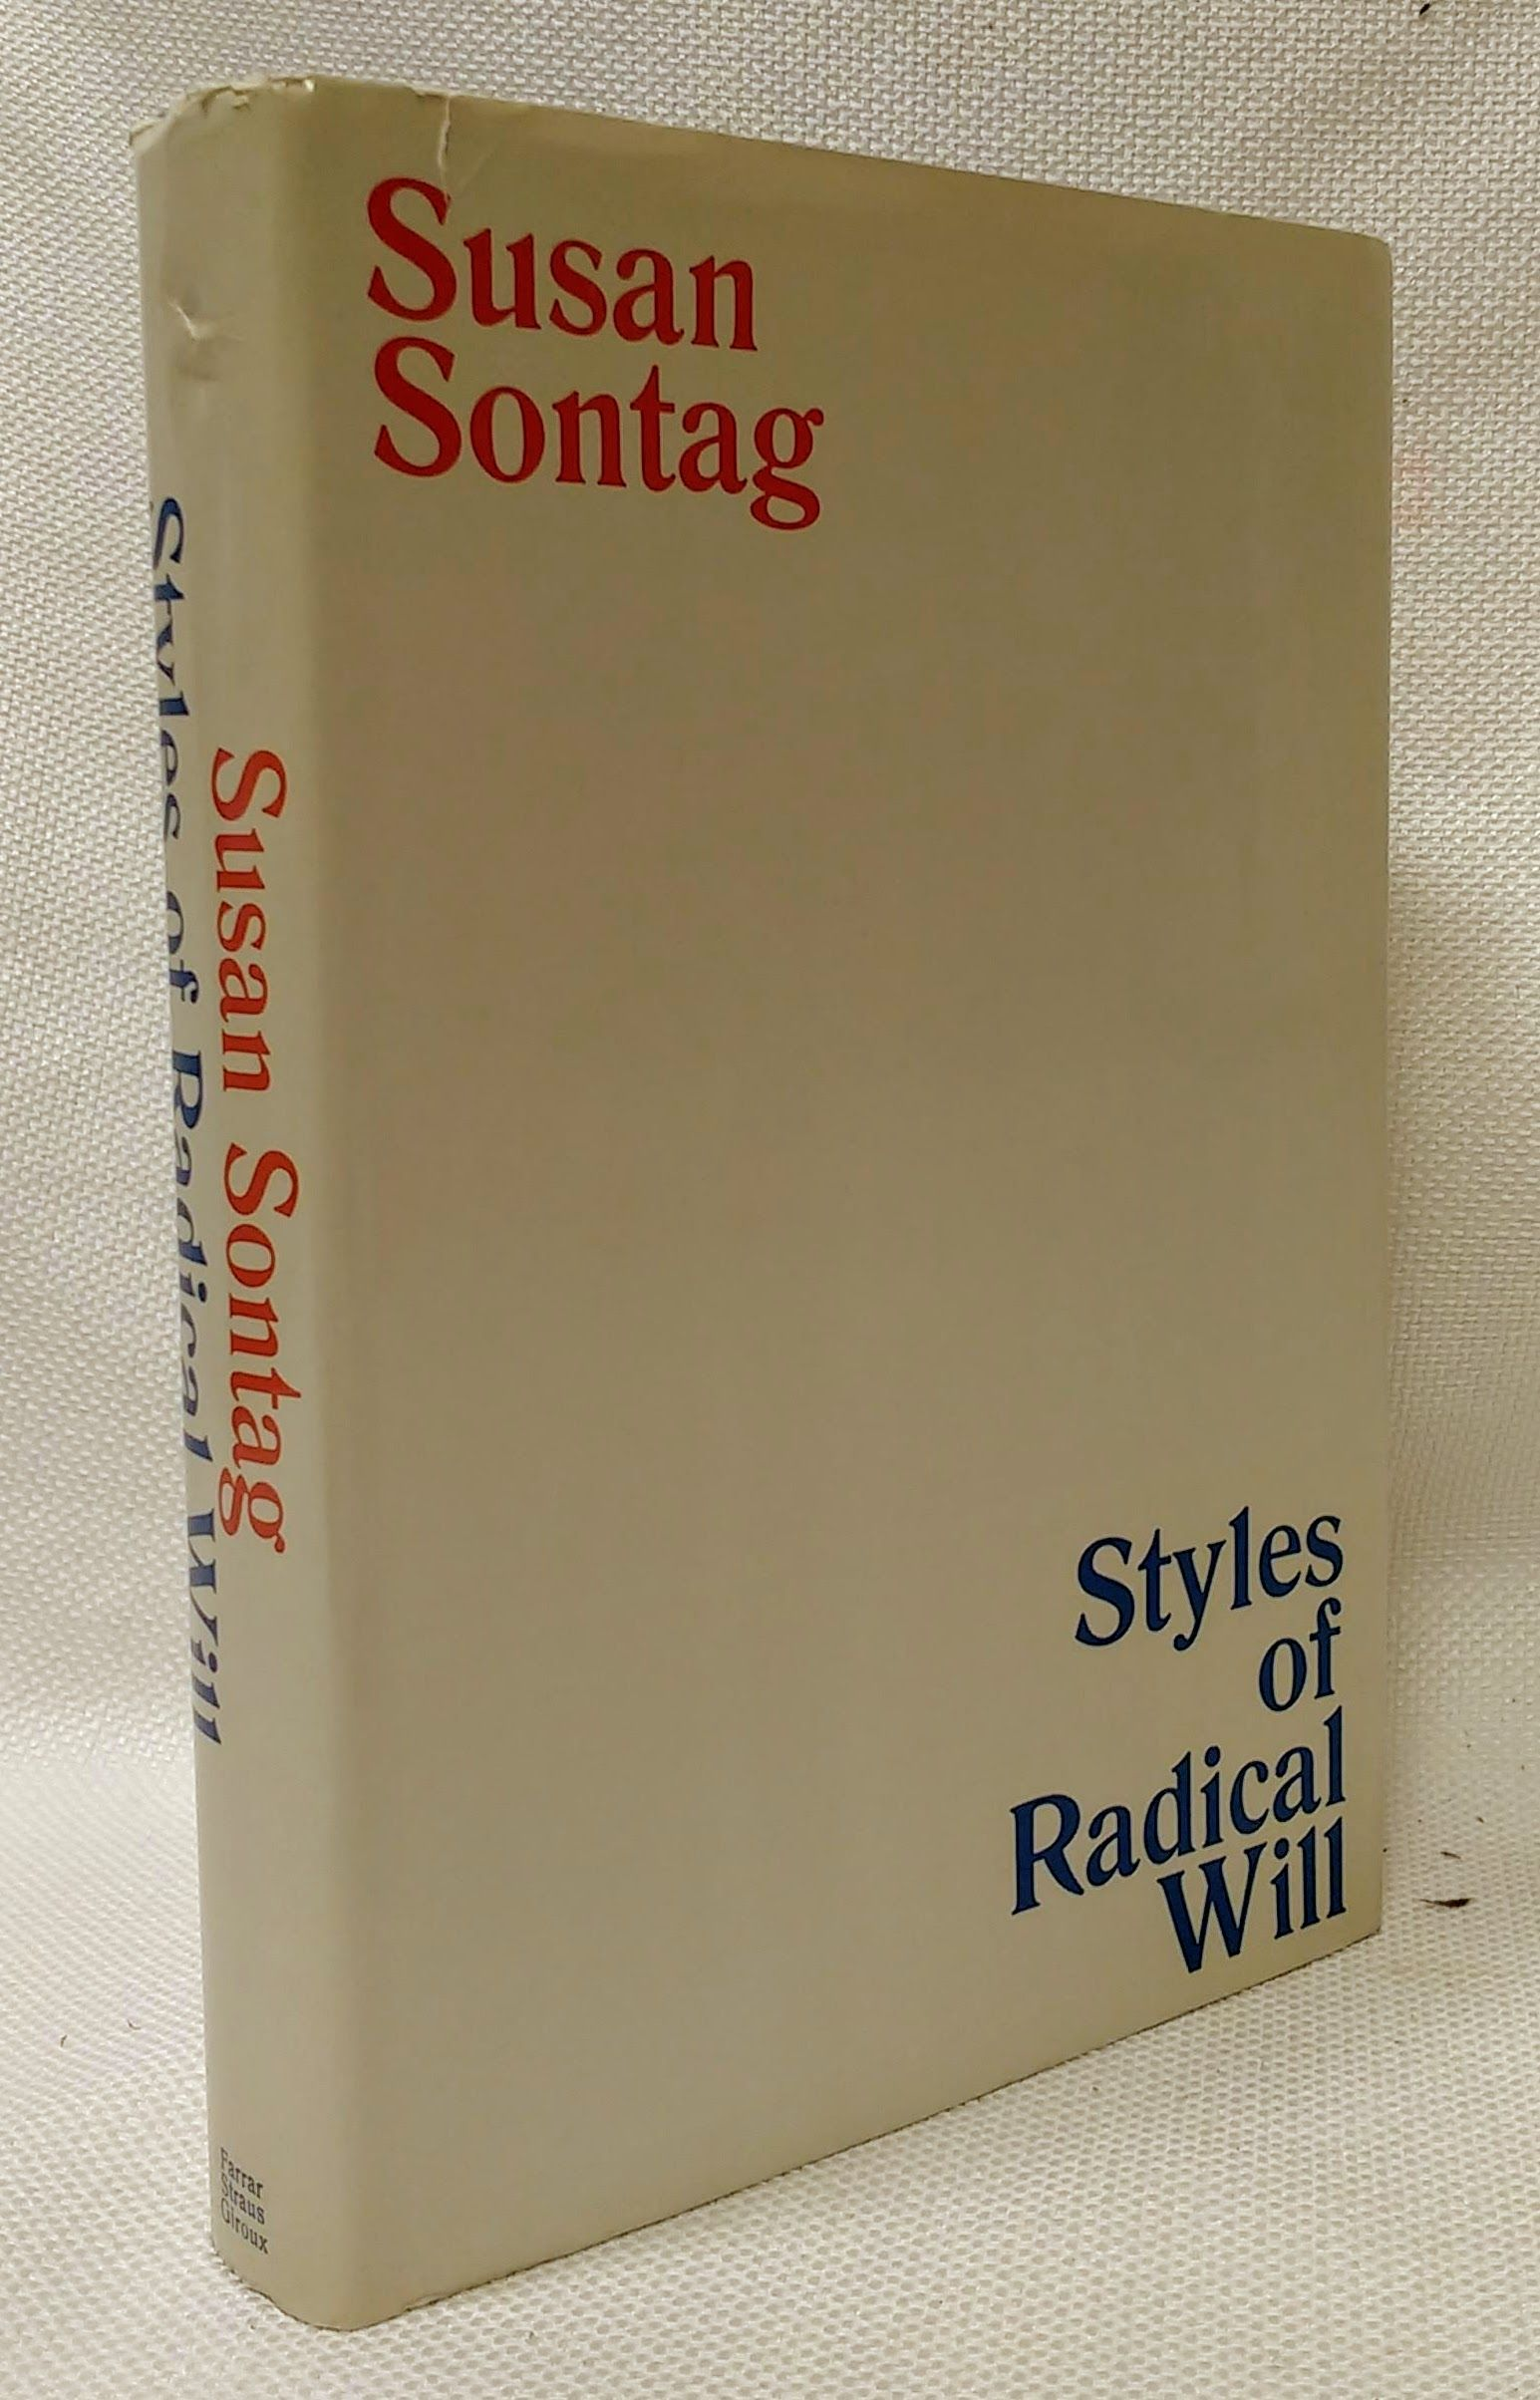 Styles of Radical Will, Sontag, Susan